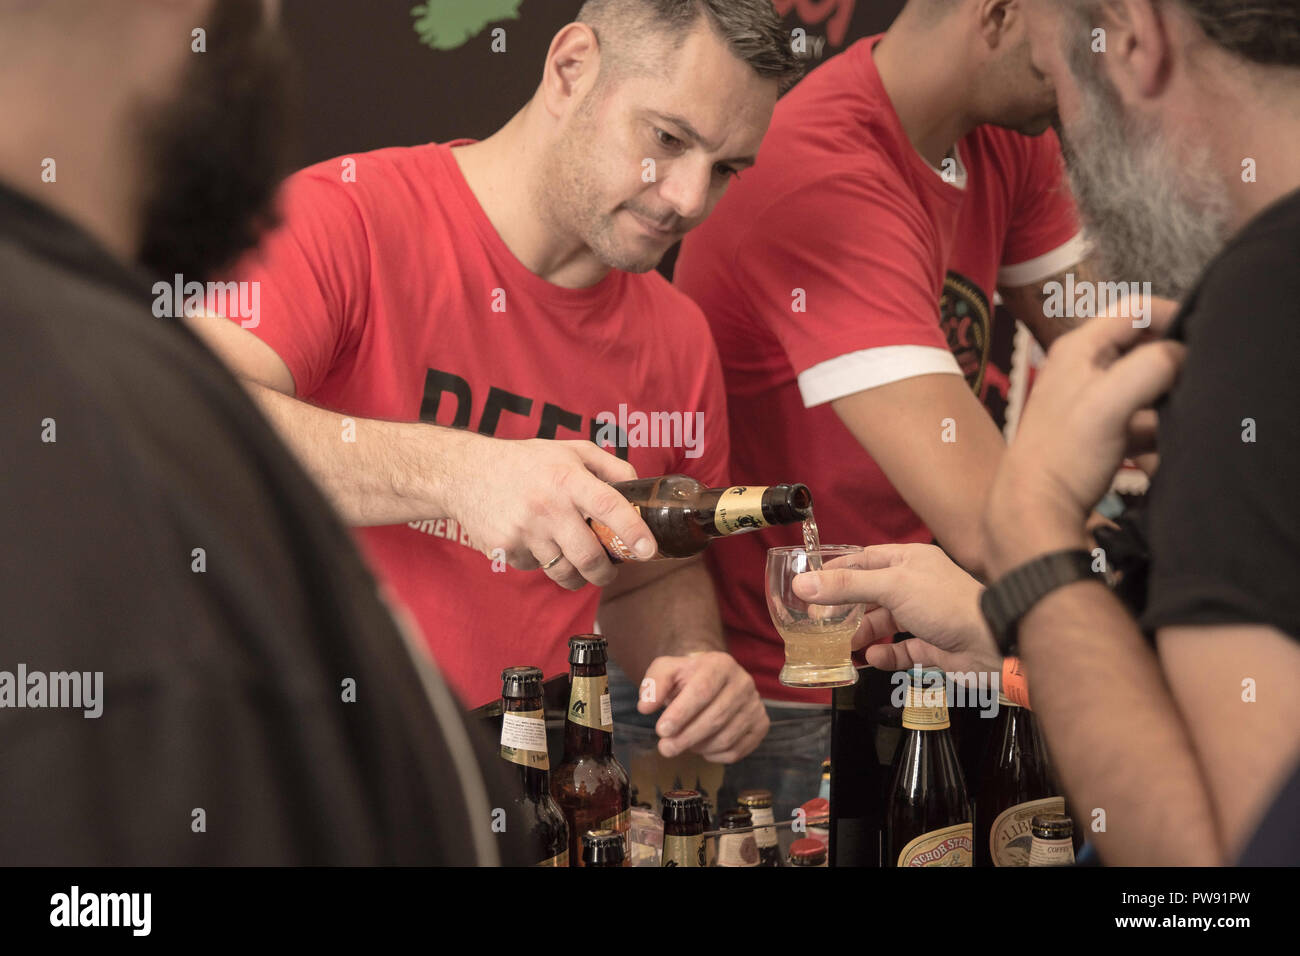 Athens, Greece. 13th Oct, 2018. A man seen pouring beer into a glass from a bottle during the exhibition.The 5th Zythognosia Exhibition, people get a chance during the exhibition to taste multiple brews and premium beers from different brands and companies like Levante for Zante Lager, Asylum for Asylum saison, Mikonu for Mikonu Pale Ale, Deals for Fischer, Samichlaus and Cava di patsi for Flaros Session Ale in Zappeion Megaron in Athens. Credit: Nikolas Joao Kokovlis/SOPA Images/ZUMA Wire/Alamy Live News - Stock Image